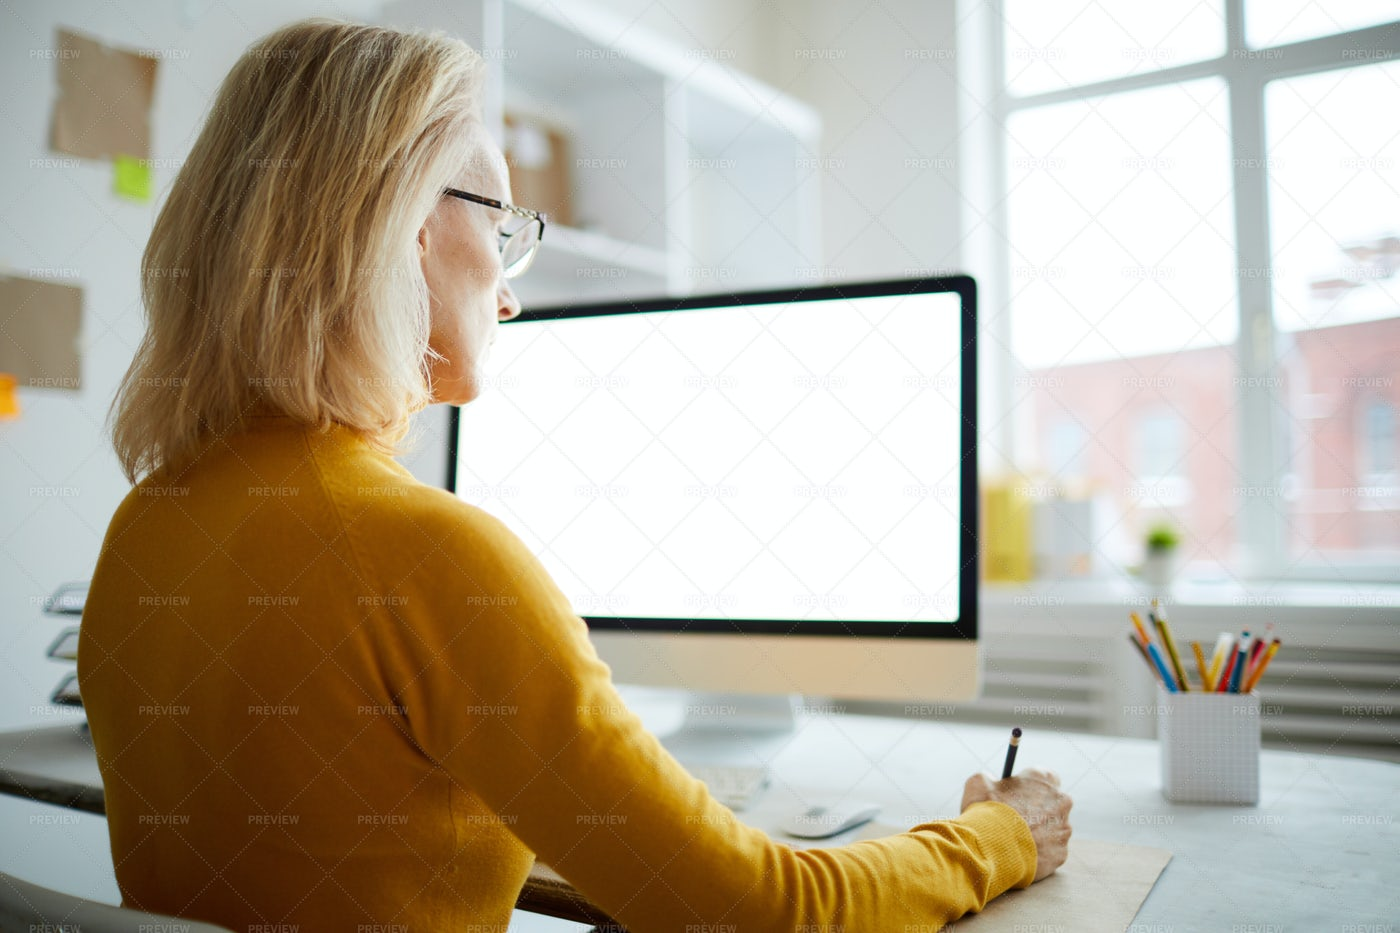 Computer With Blank Screen: Stock Photos